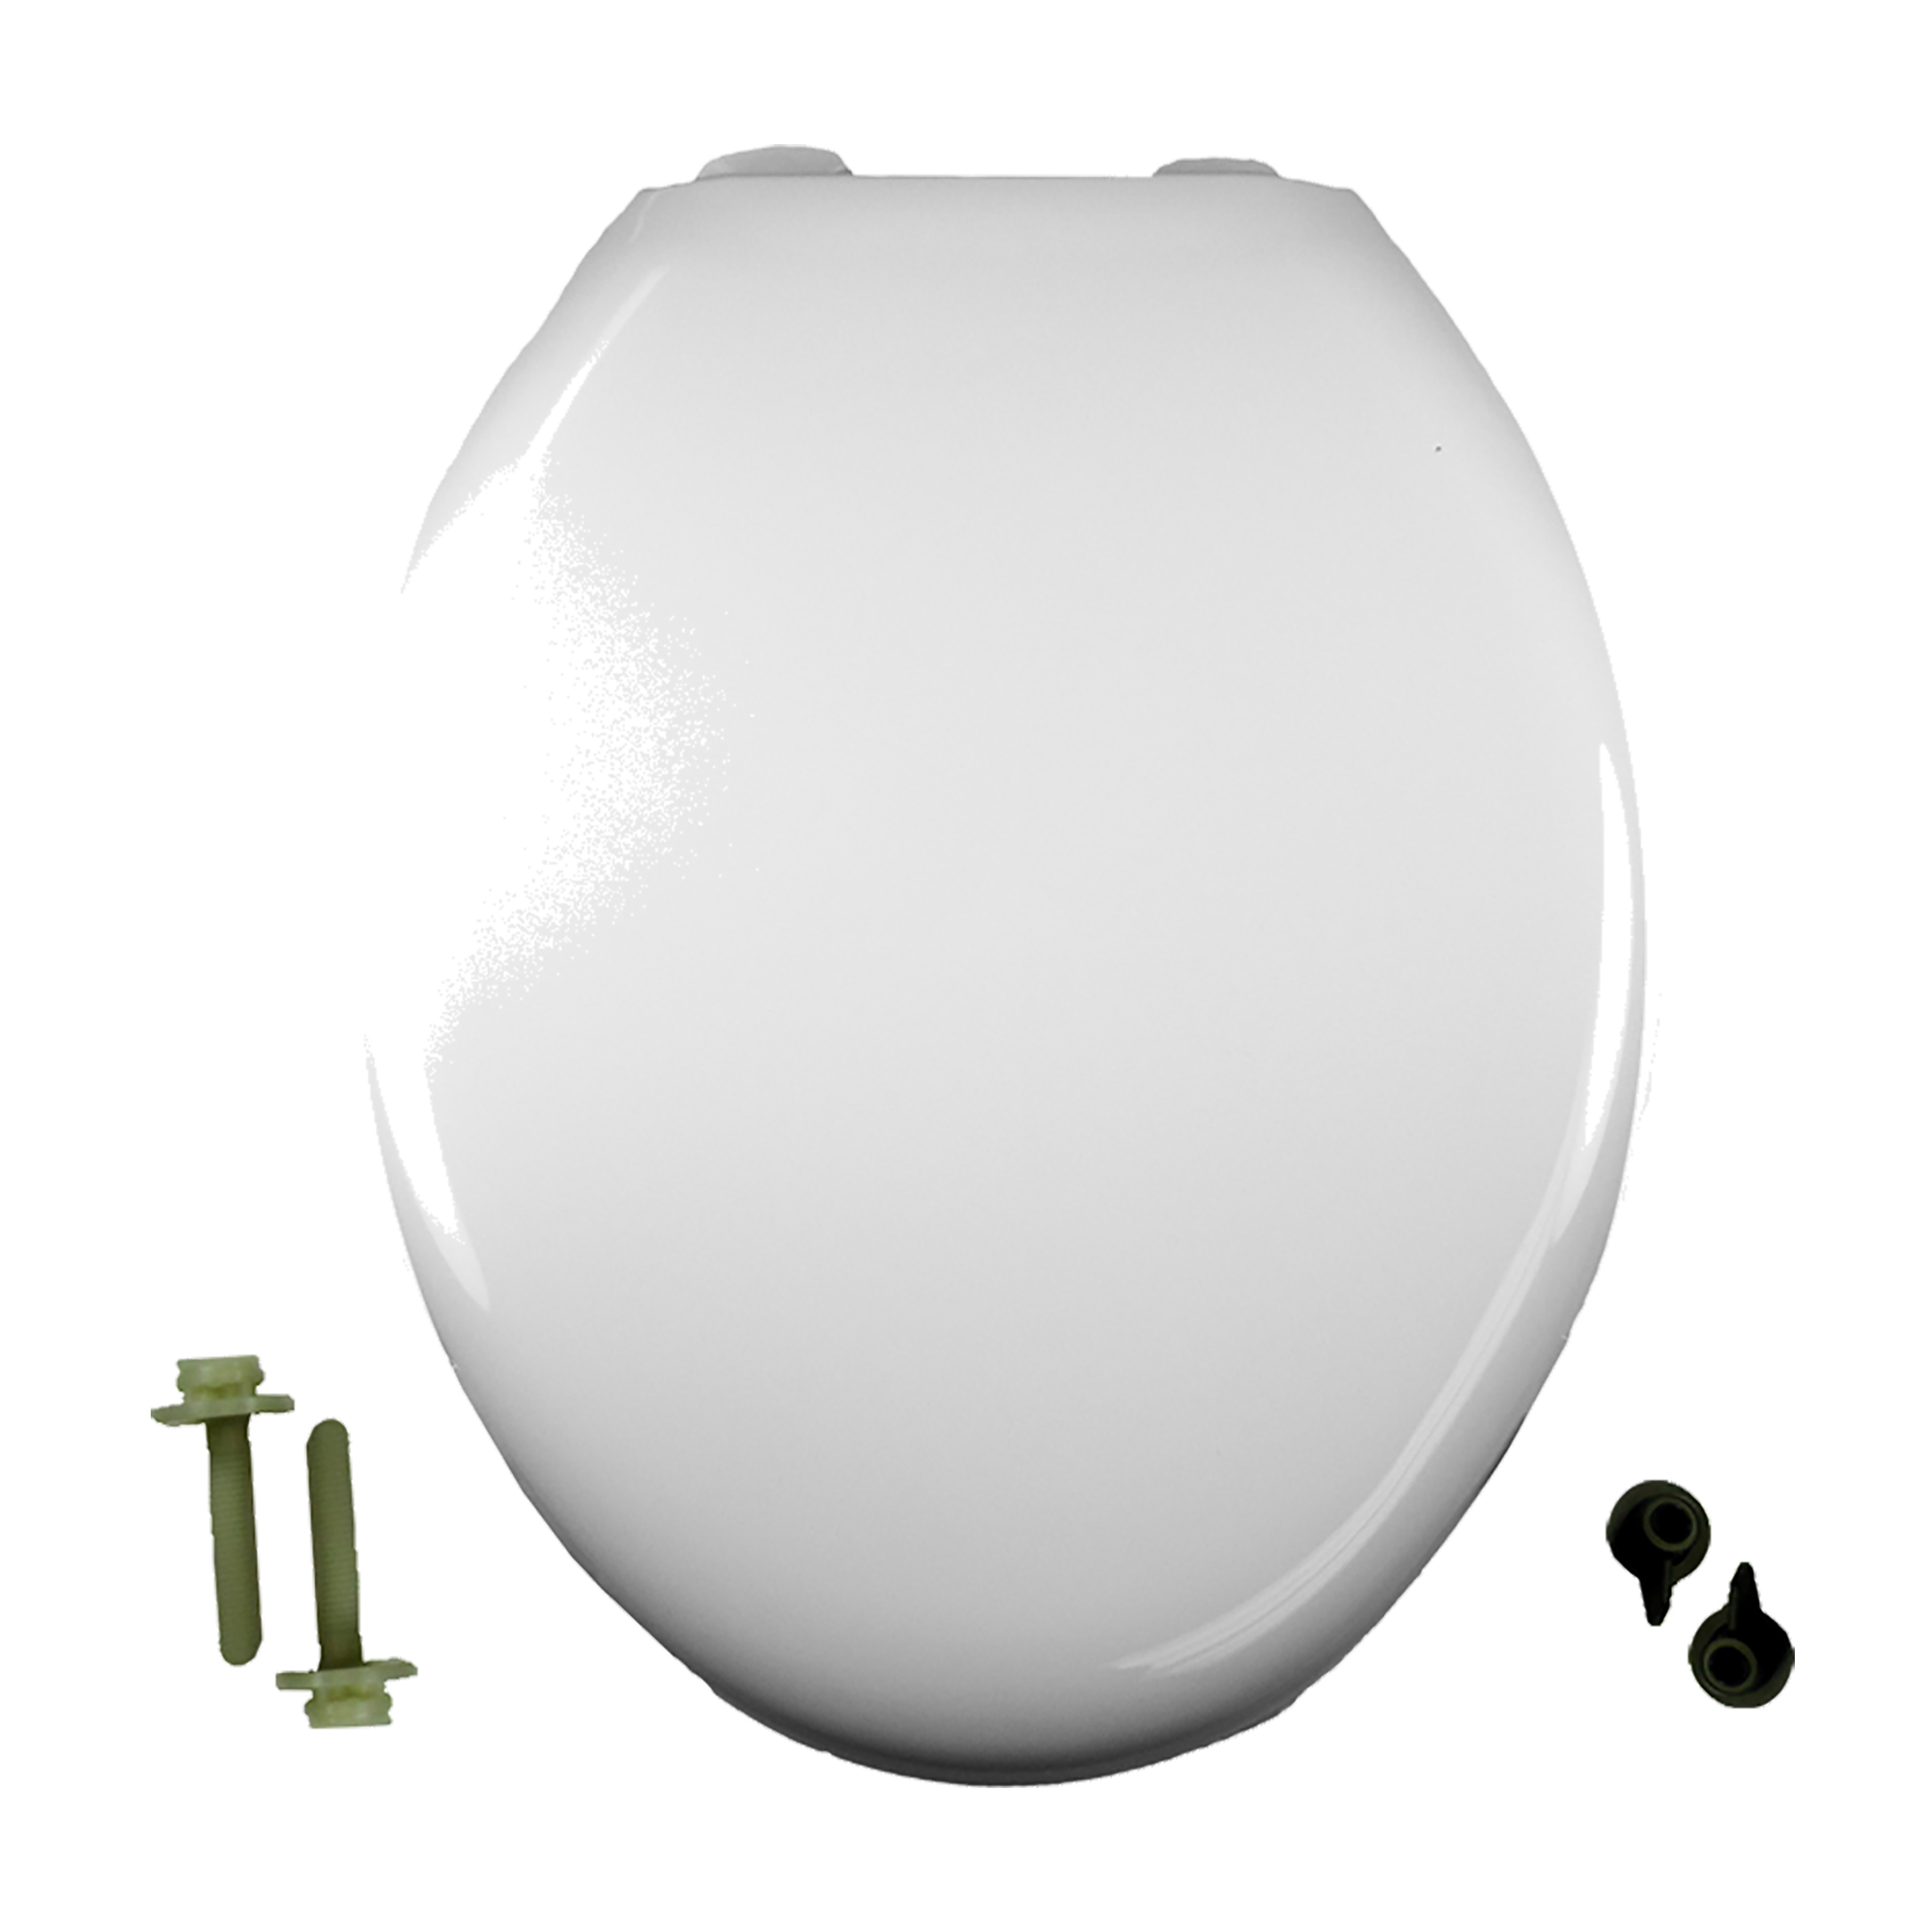 American Standard 5325.010.020 Champion® Slow-Close Toilet Seat, Elongated Bowl, Closed Front, Plastic, White